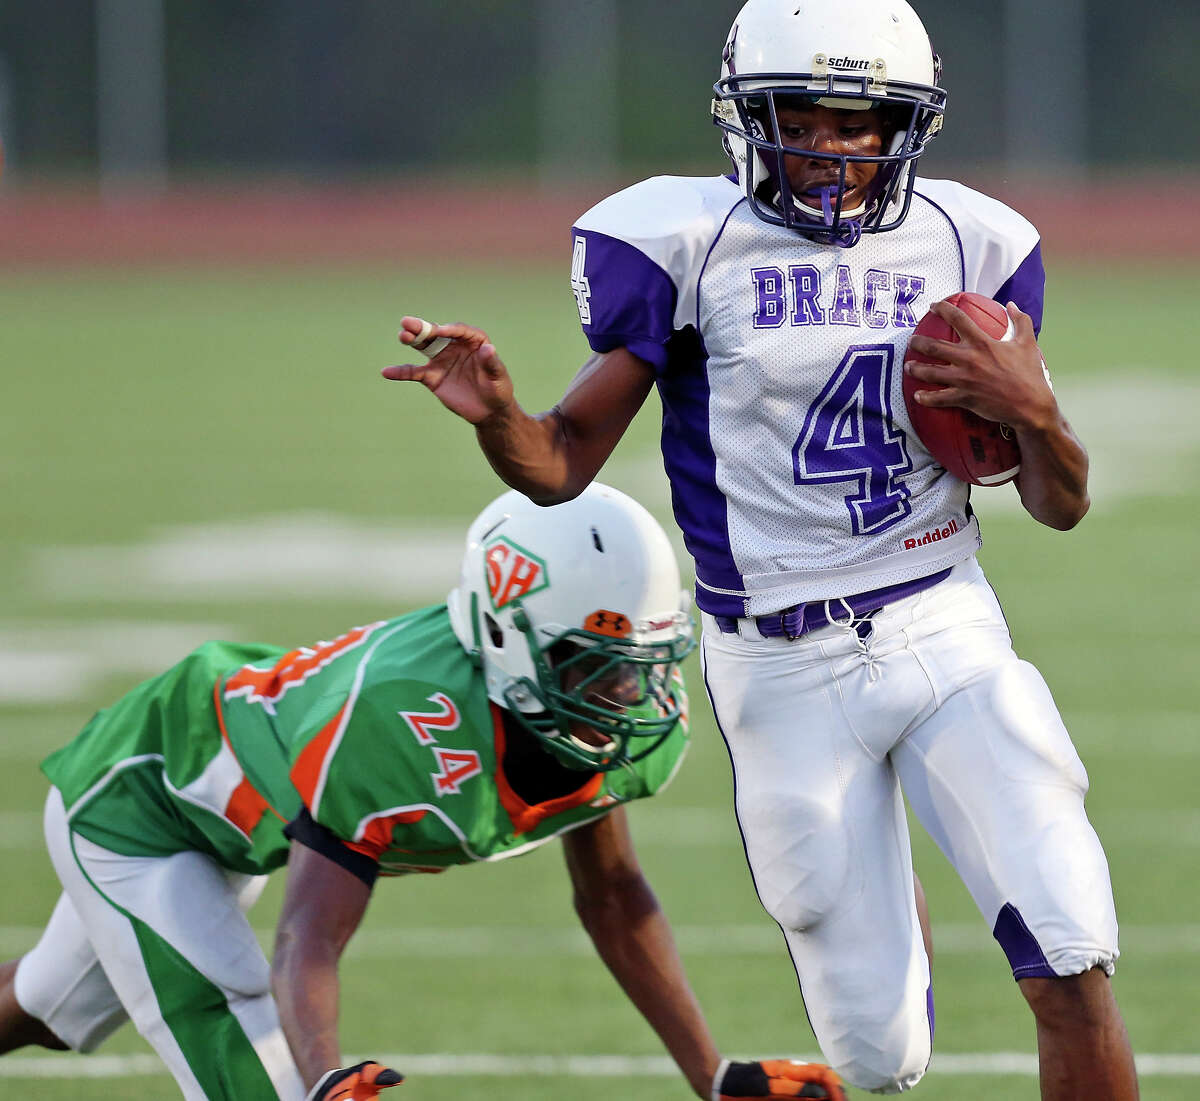 Brackenridge's Robert Allen looks for room around Sam Houston's Erin Mack during first half action Friday Aug. 30, 2013 at the Wheatley Heights Sports Complex.